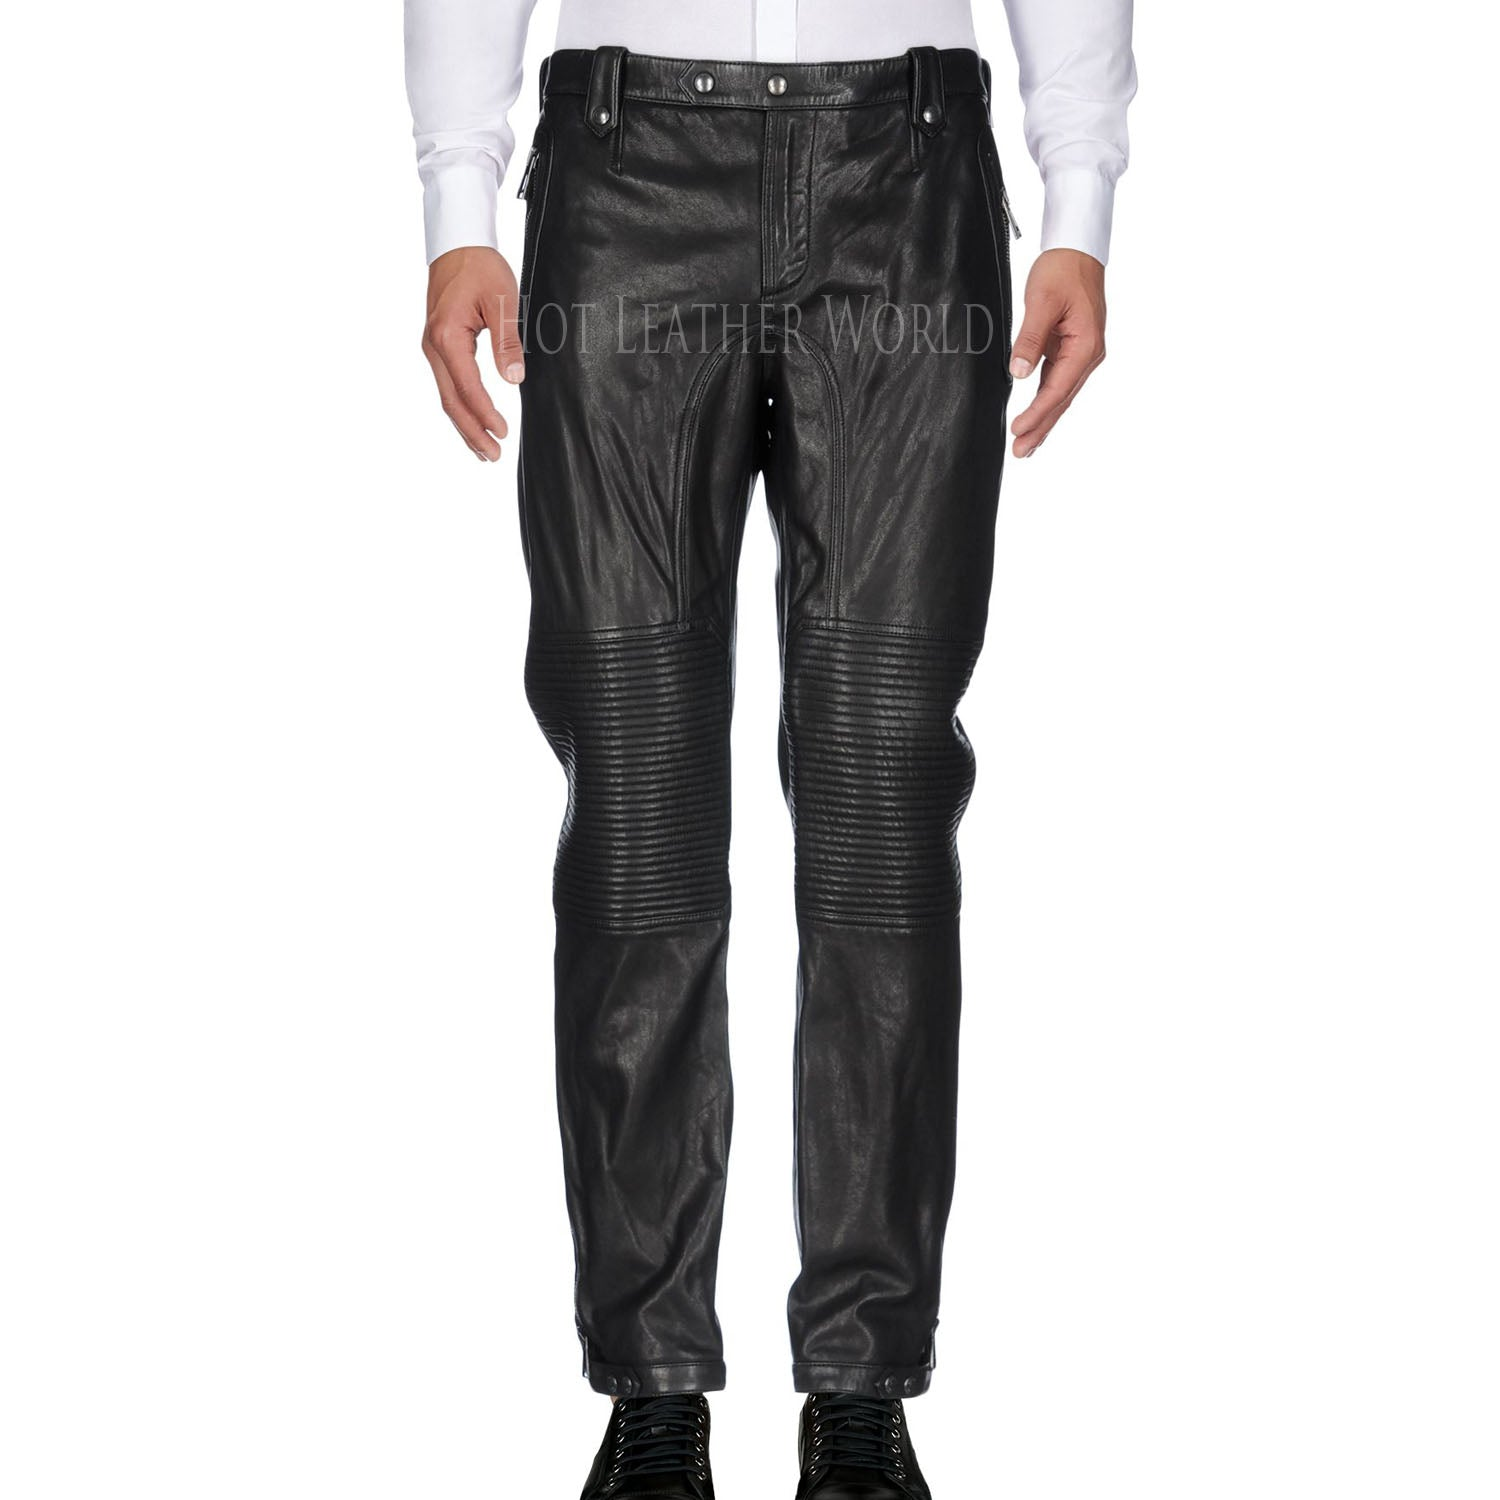 Classical Style Men Leather Pant -  HOTLEATHERWORLD